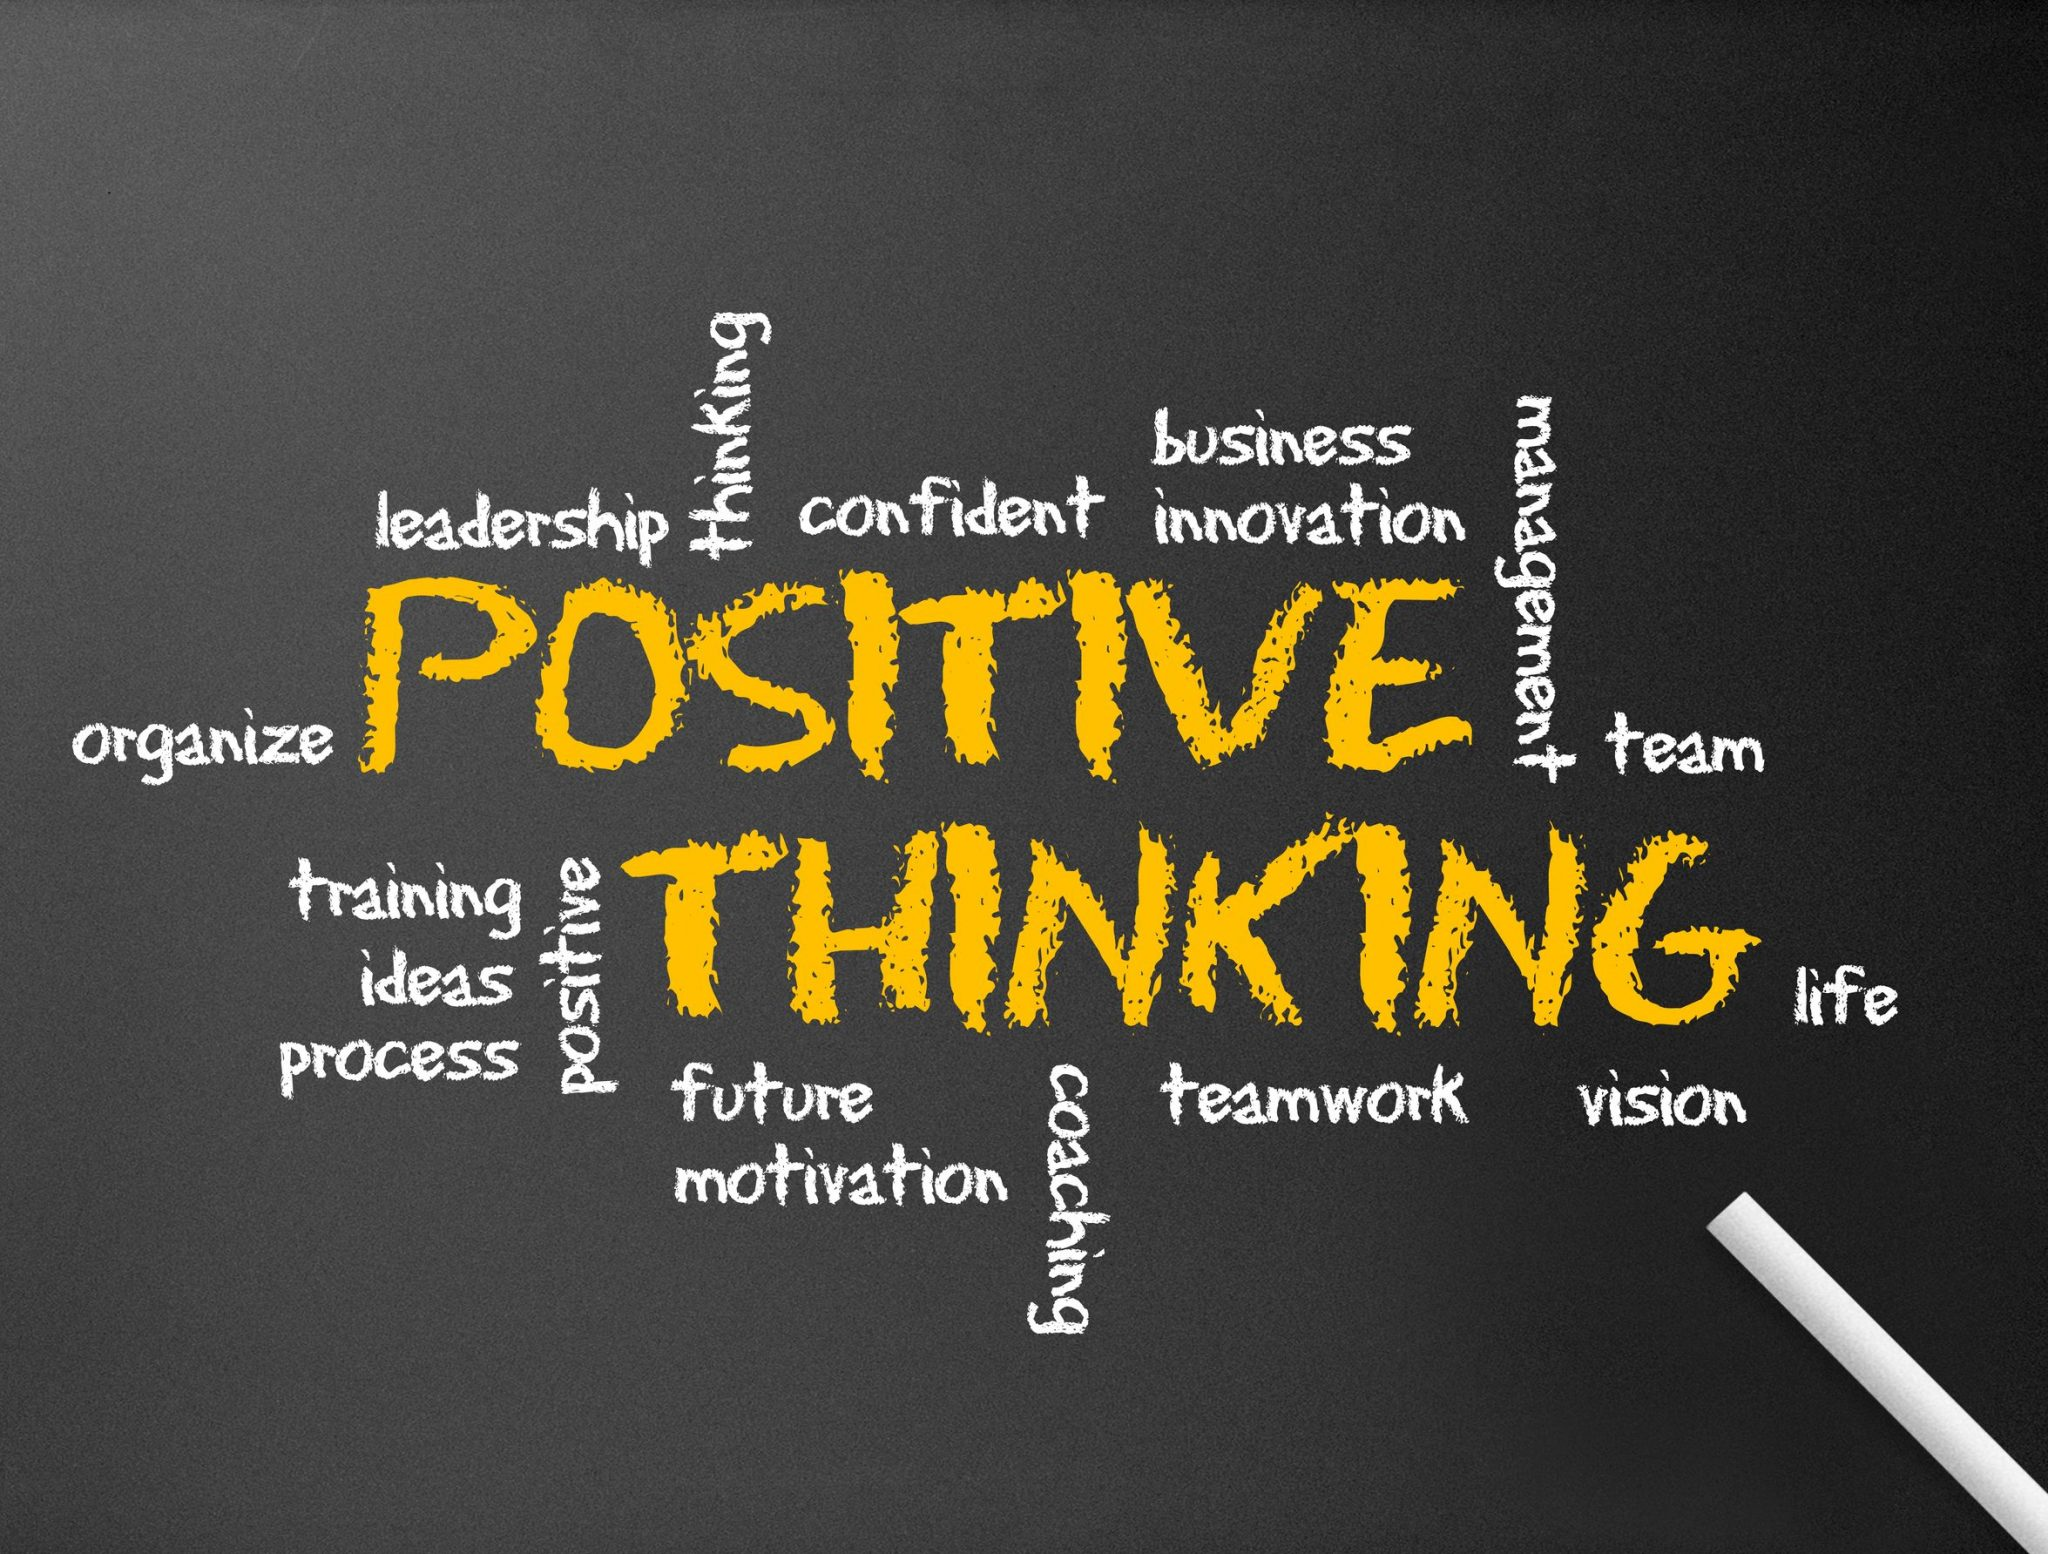 How To Increase Prosperity With Positive Thinking?